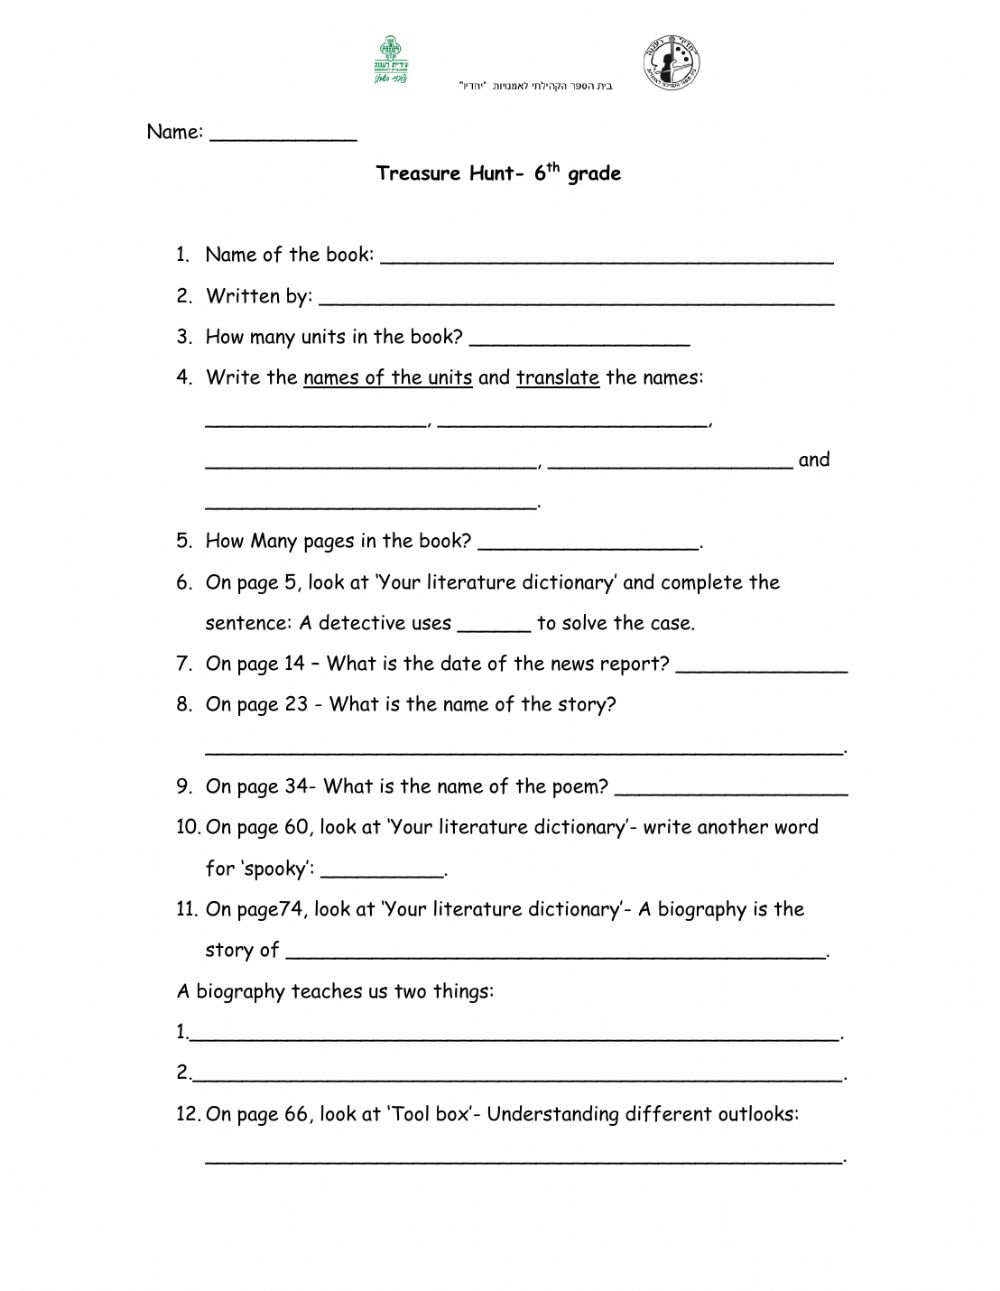 hight resolution of Treasure Hunt- 6th grade worksheet